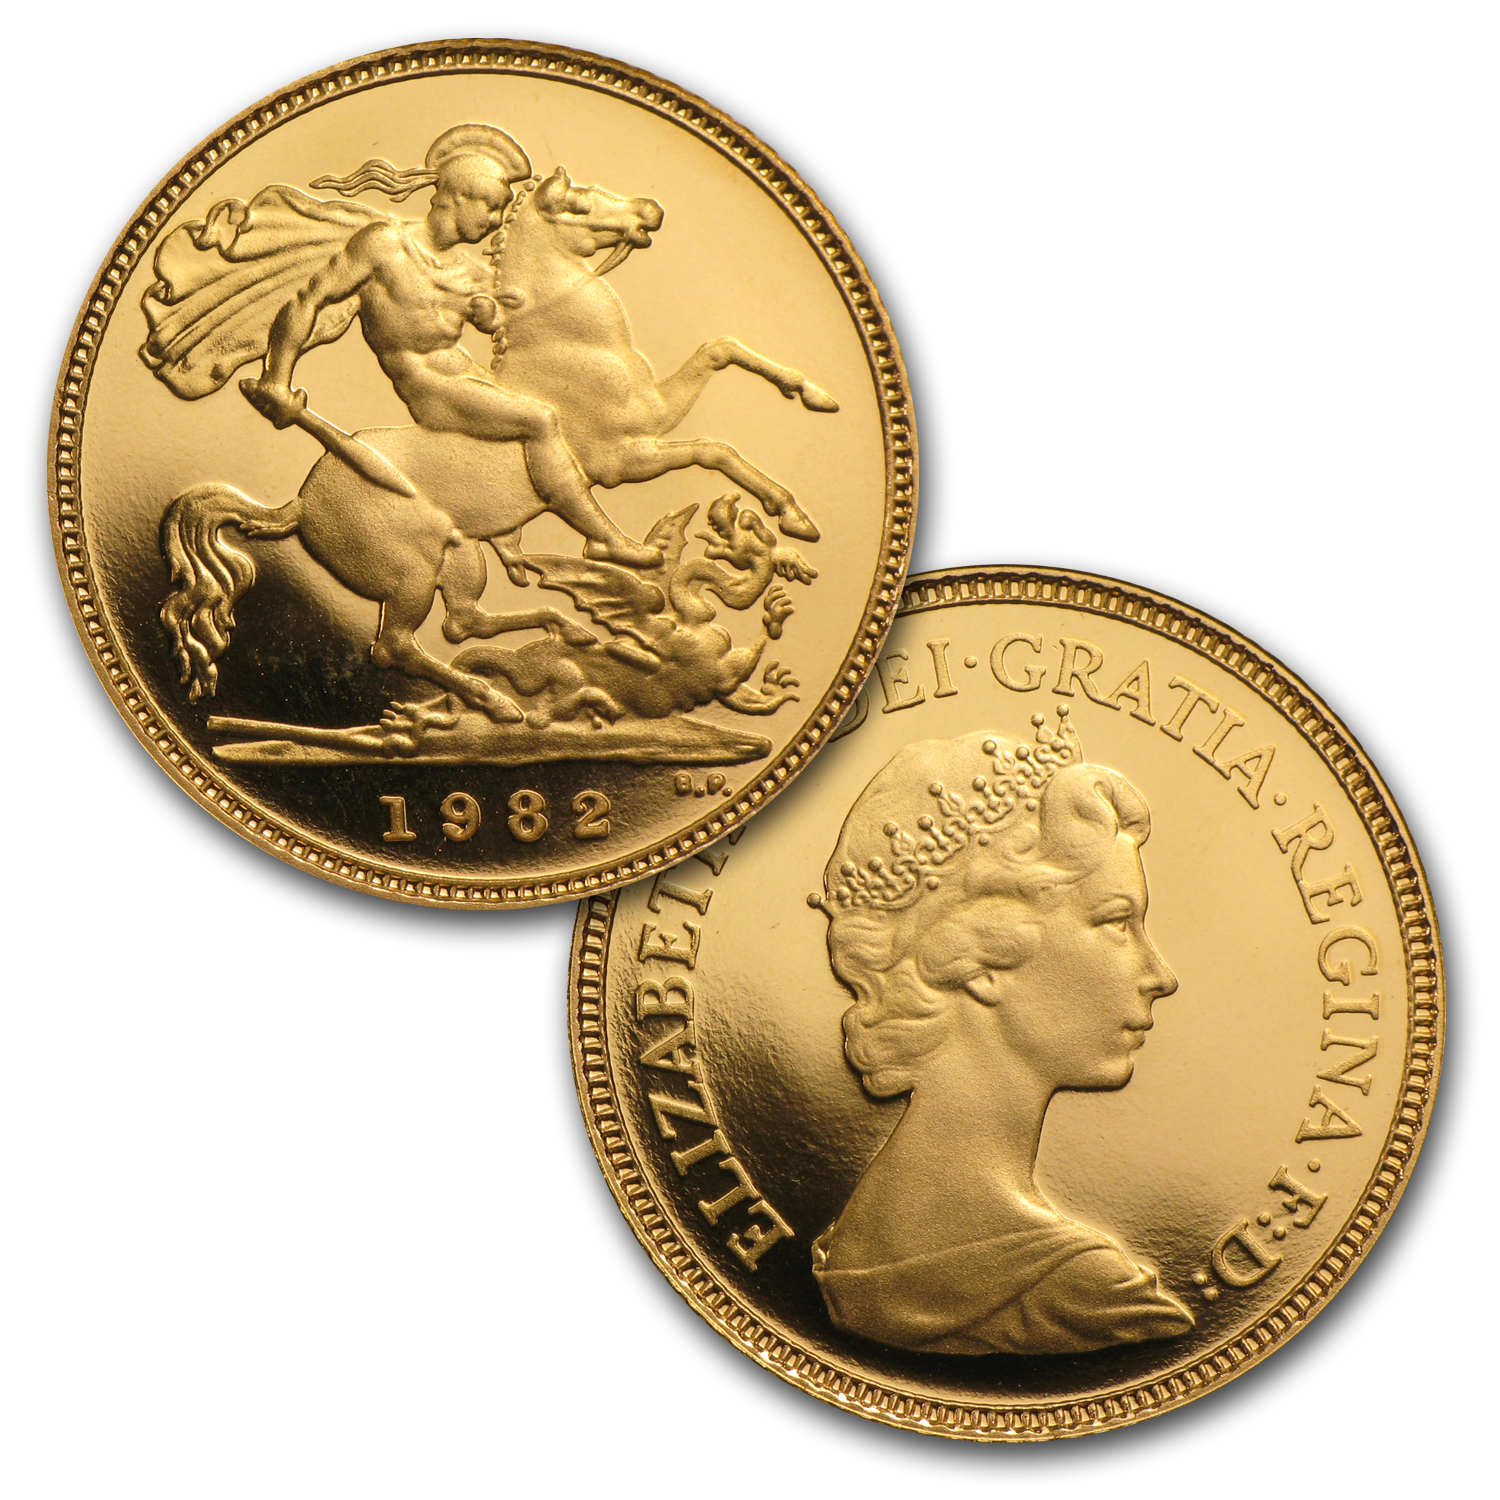 Great Britain 1982 4 Coin Gold Proof Set